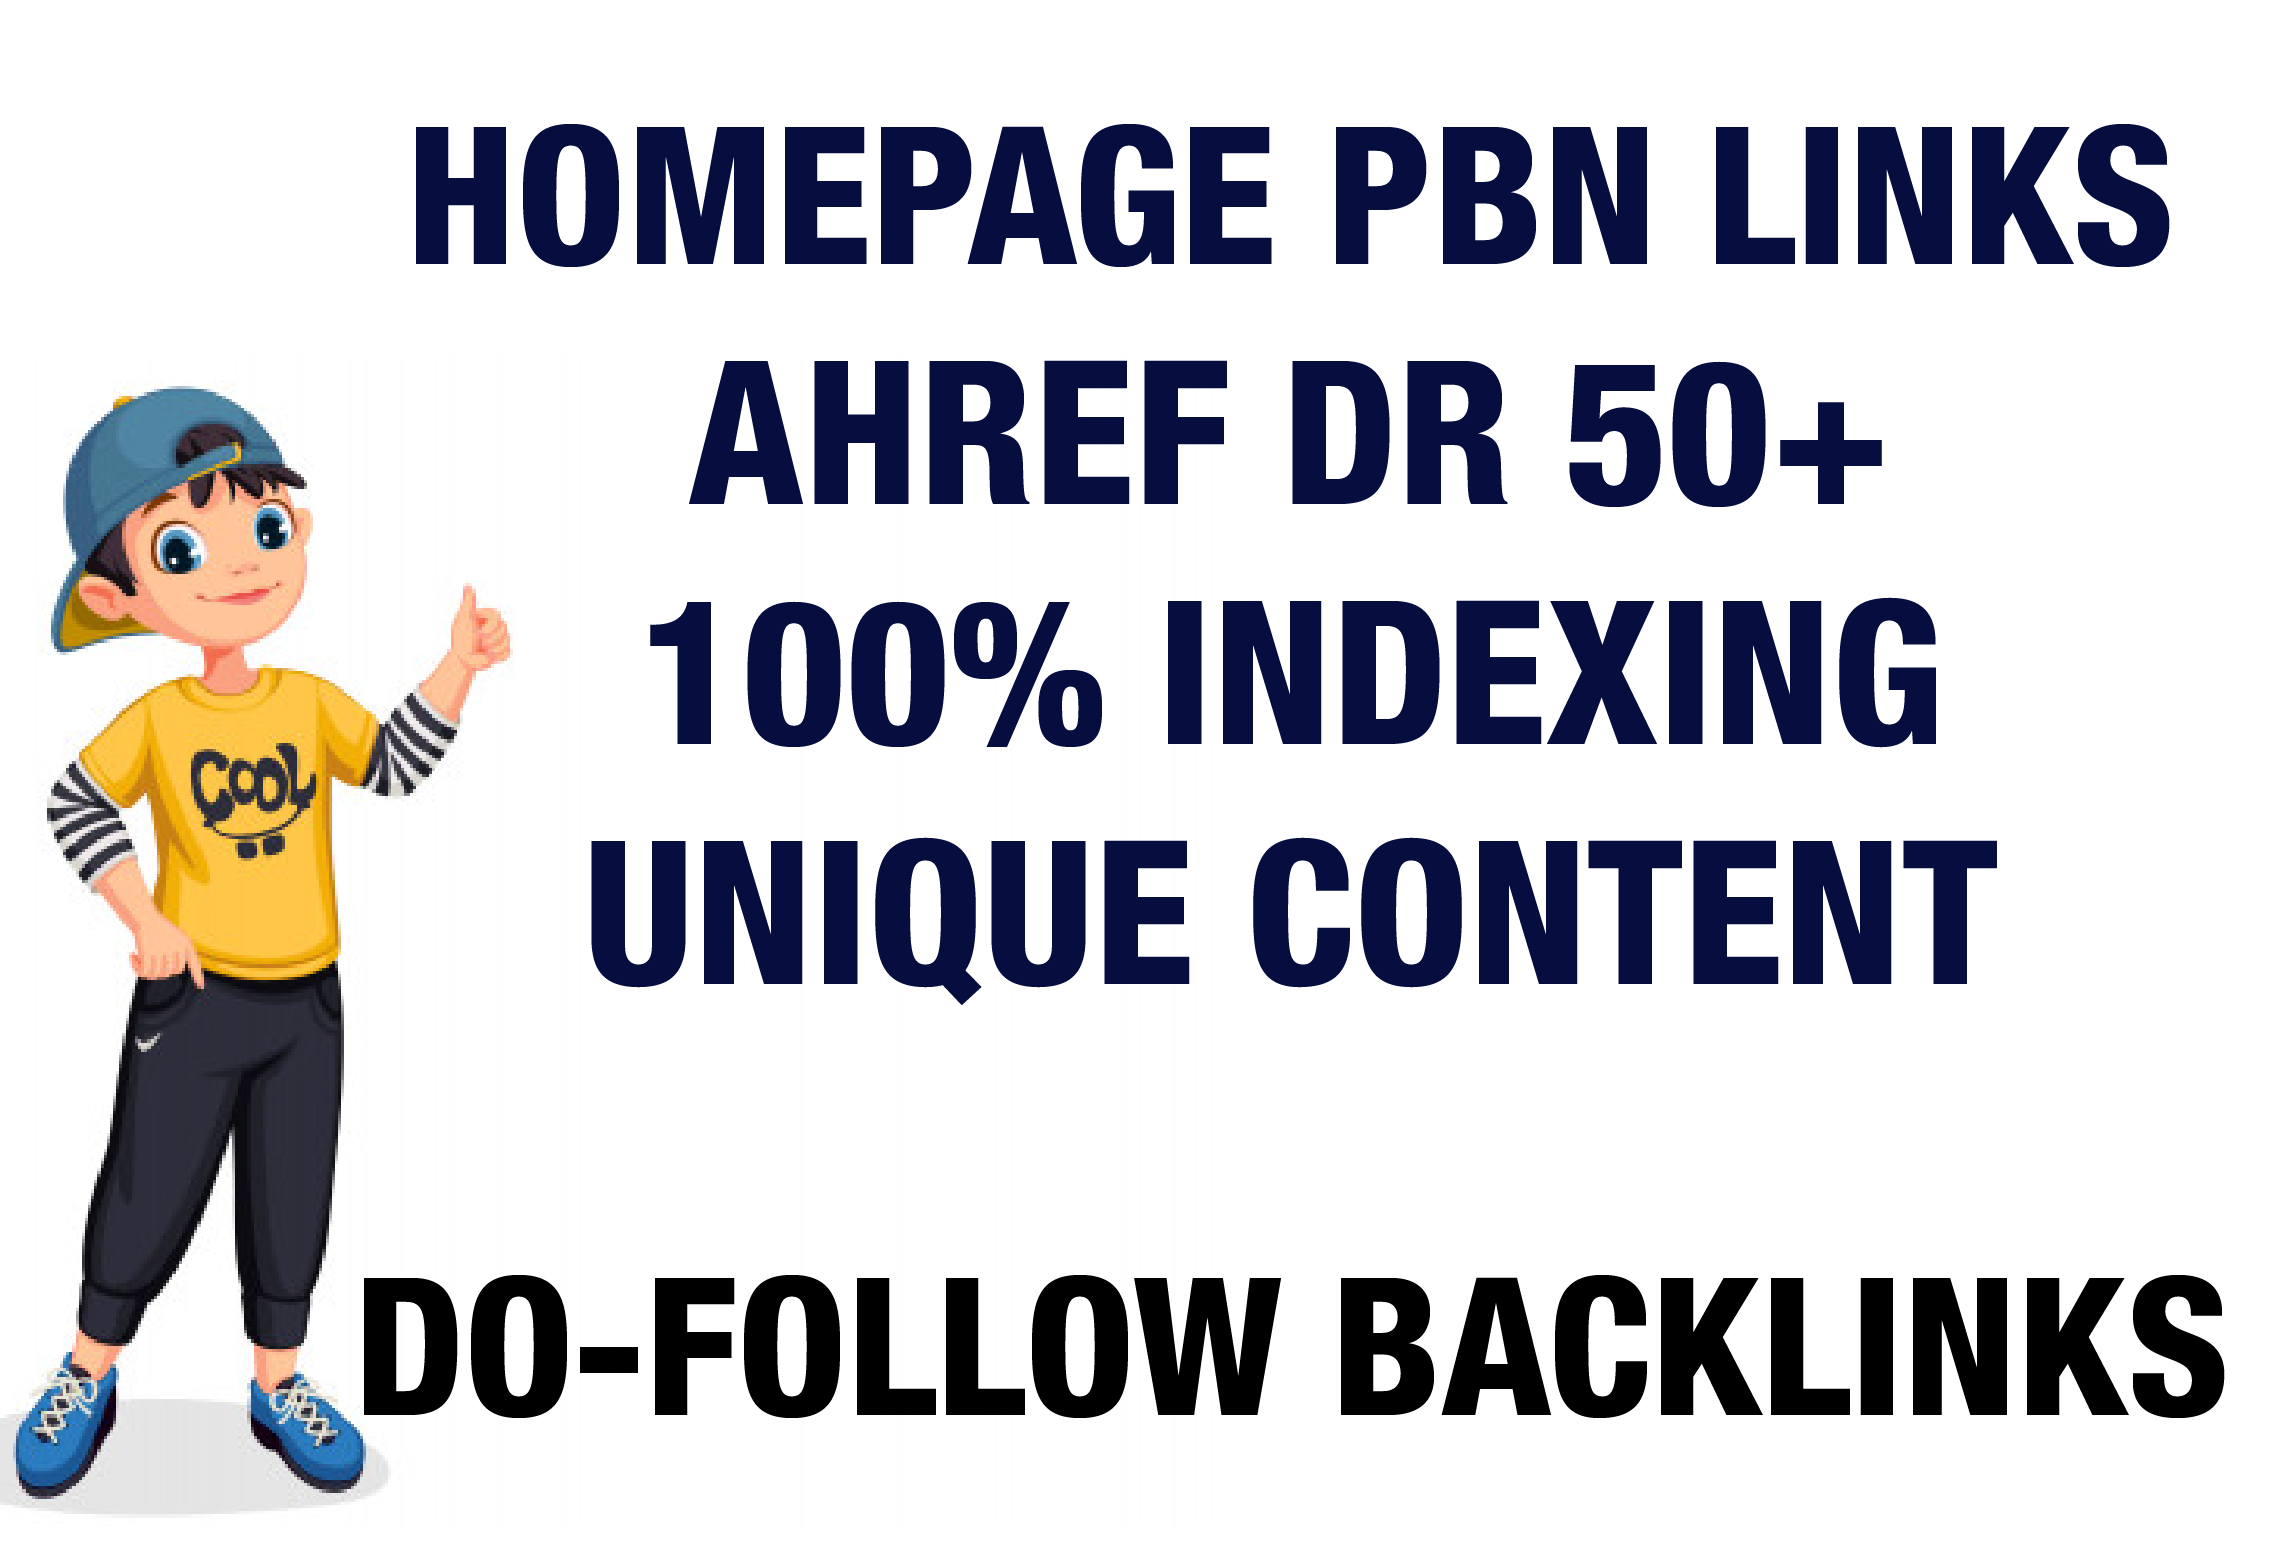 I will Provide 10 DR 50 Plus Home Page PBN Backlinks